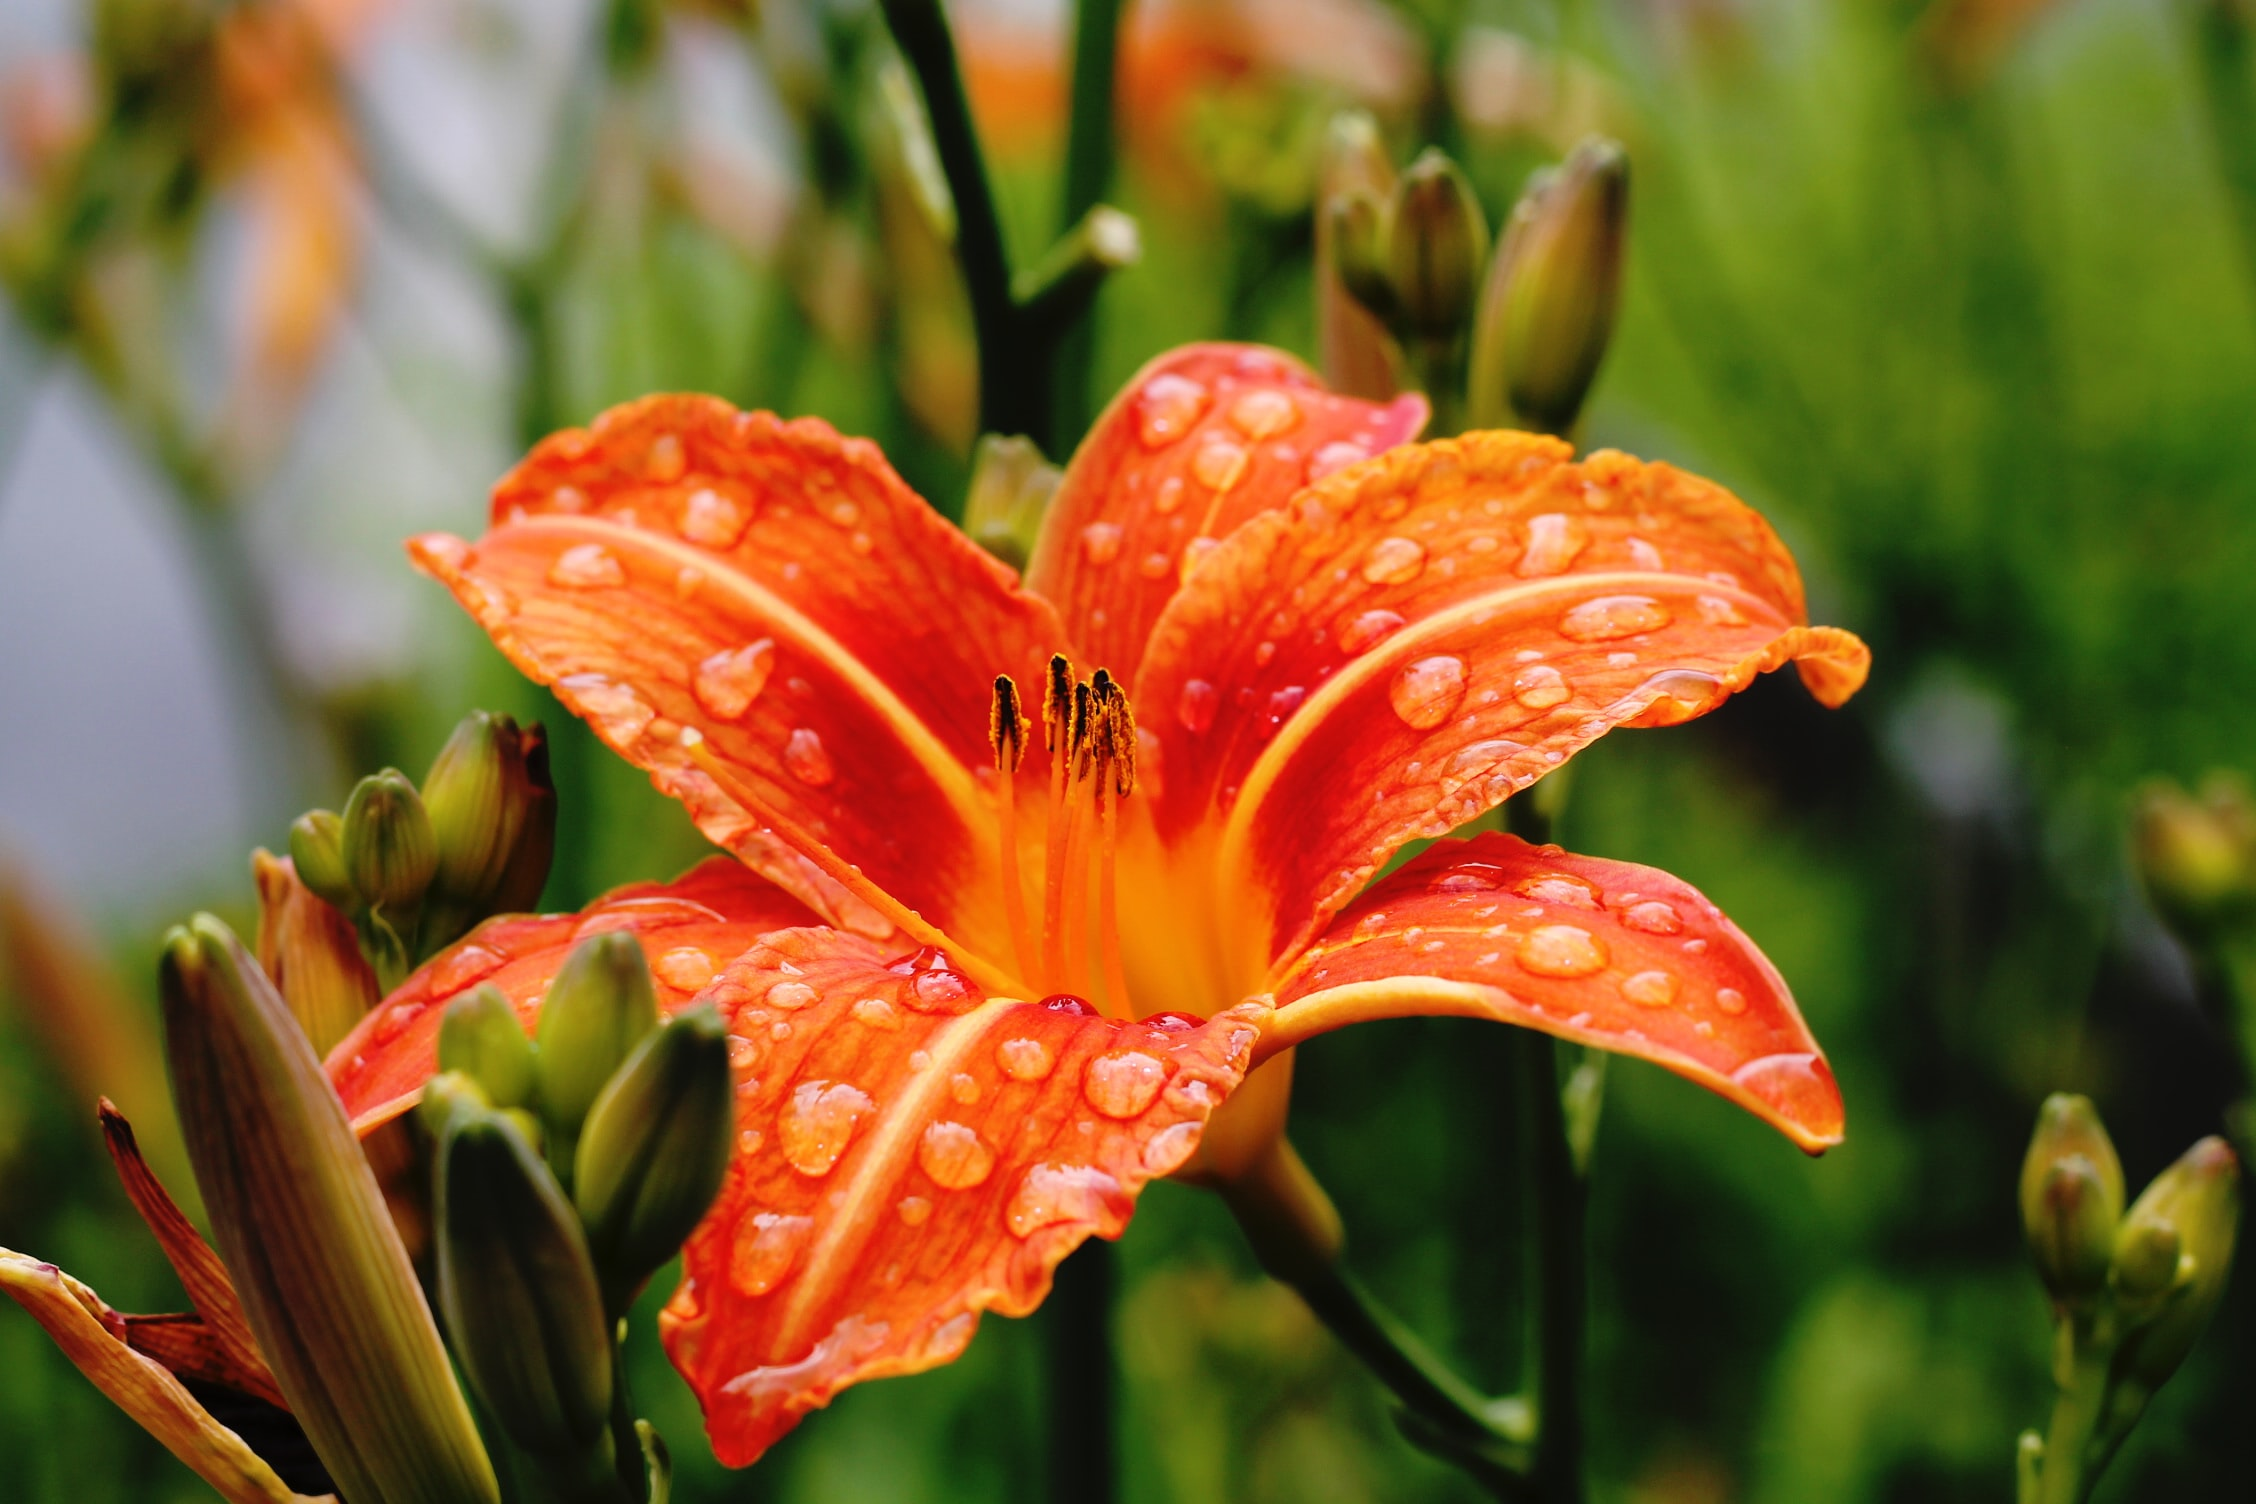 A red lily covered with waterdrops